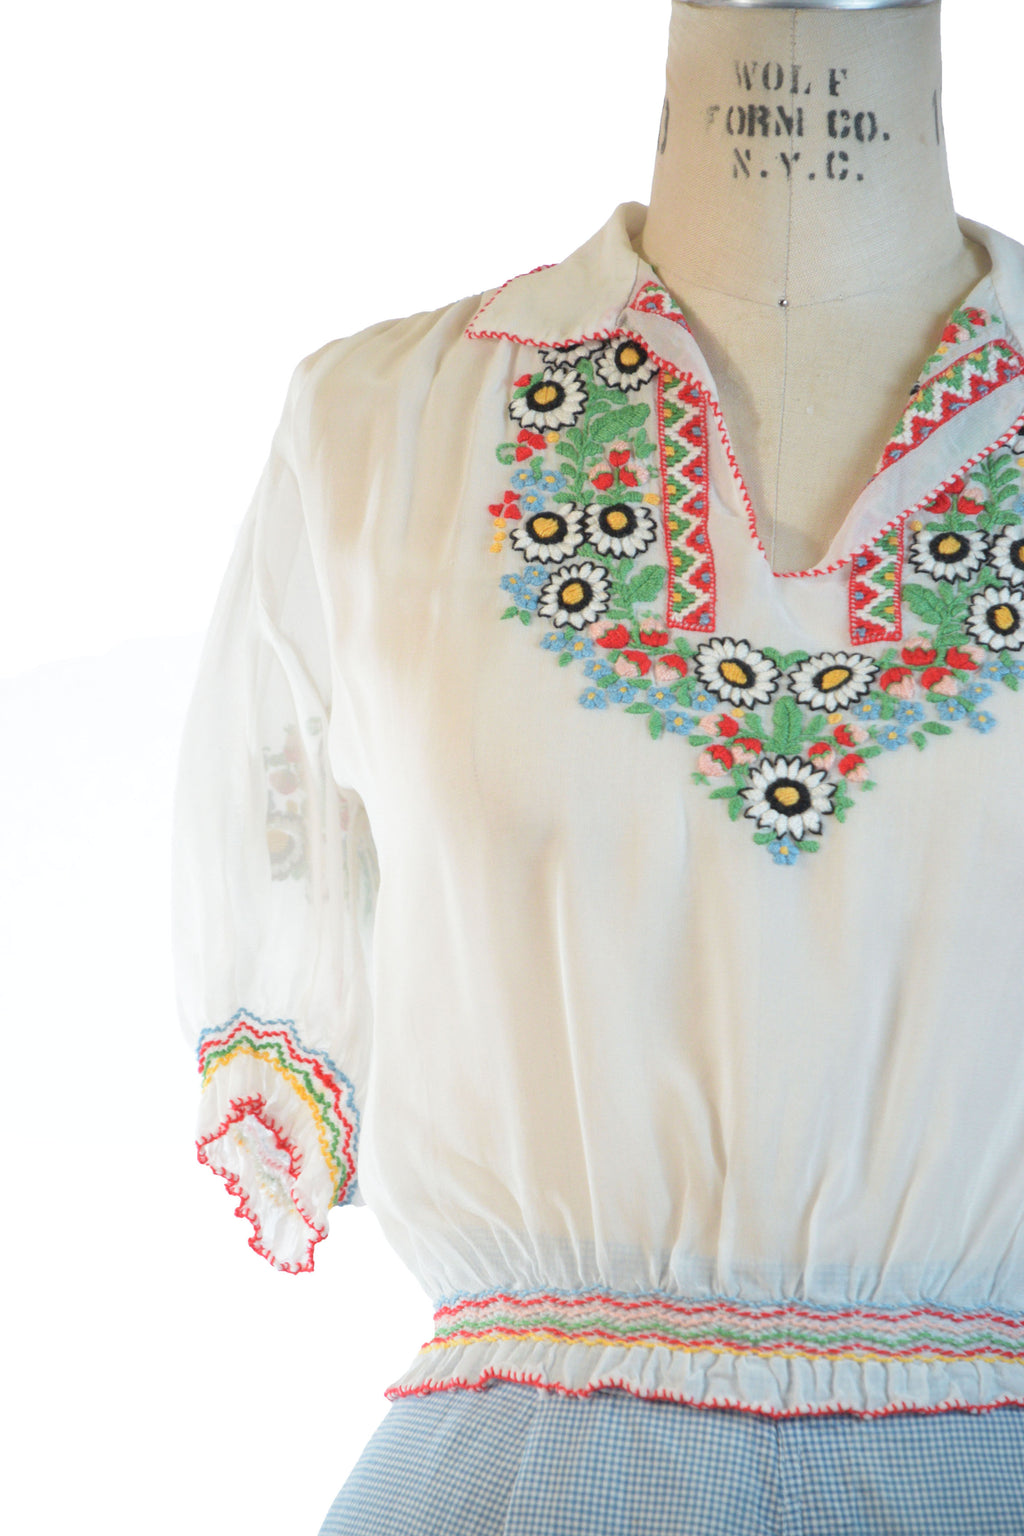 Fantastic 1940s-1960s Hungarian Peasant Blouse in Rayon Chiffon with Strawberry Motif